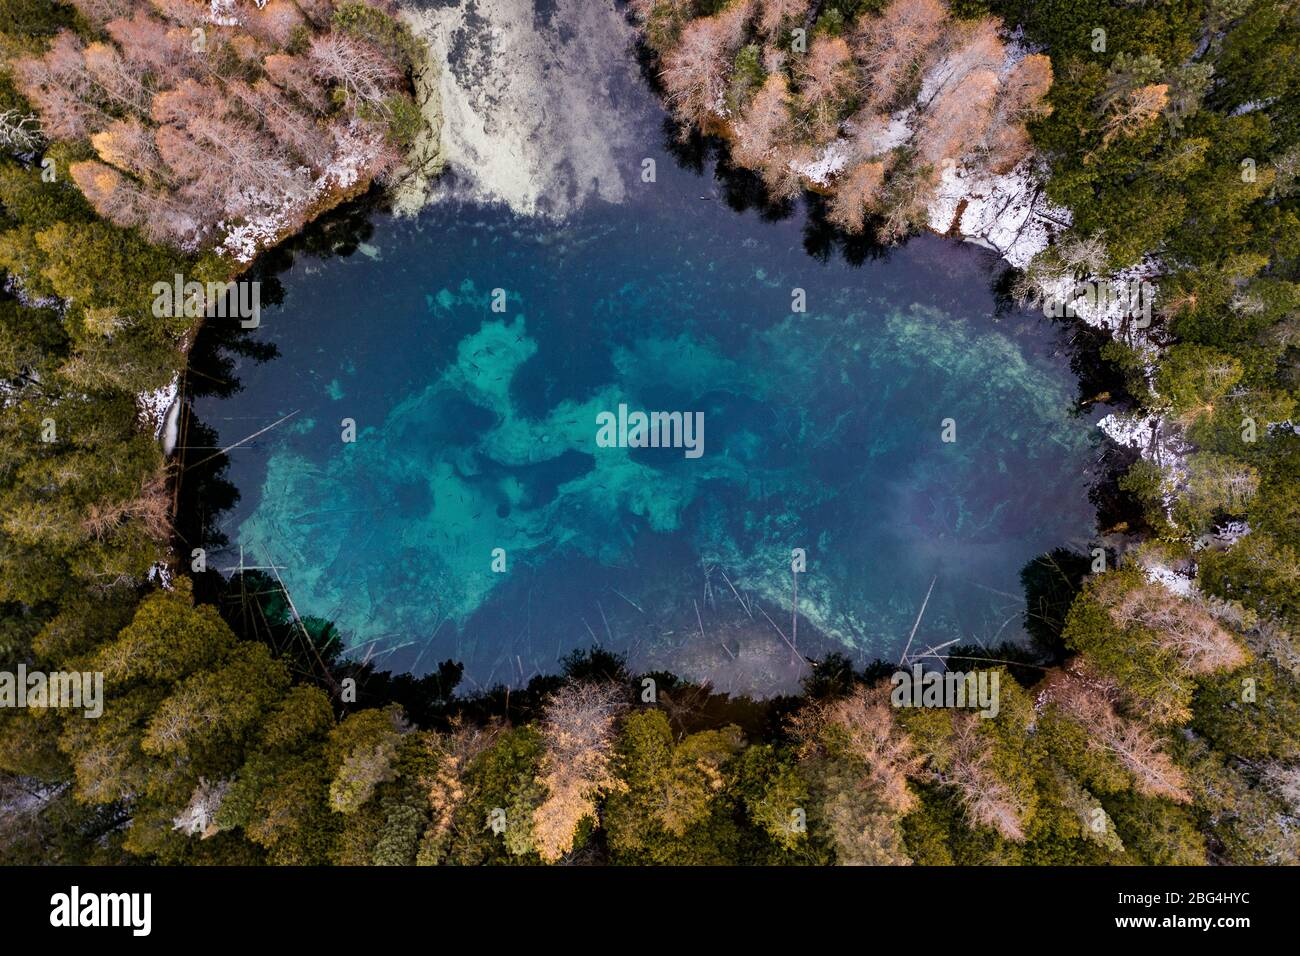 Aerial of Blue Freshwater Spring in Kitch-iti-kipi SP in Michigan Stock Photo